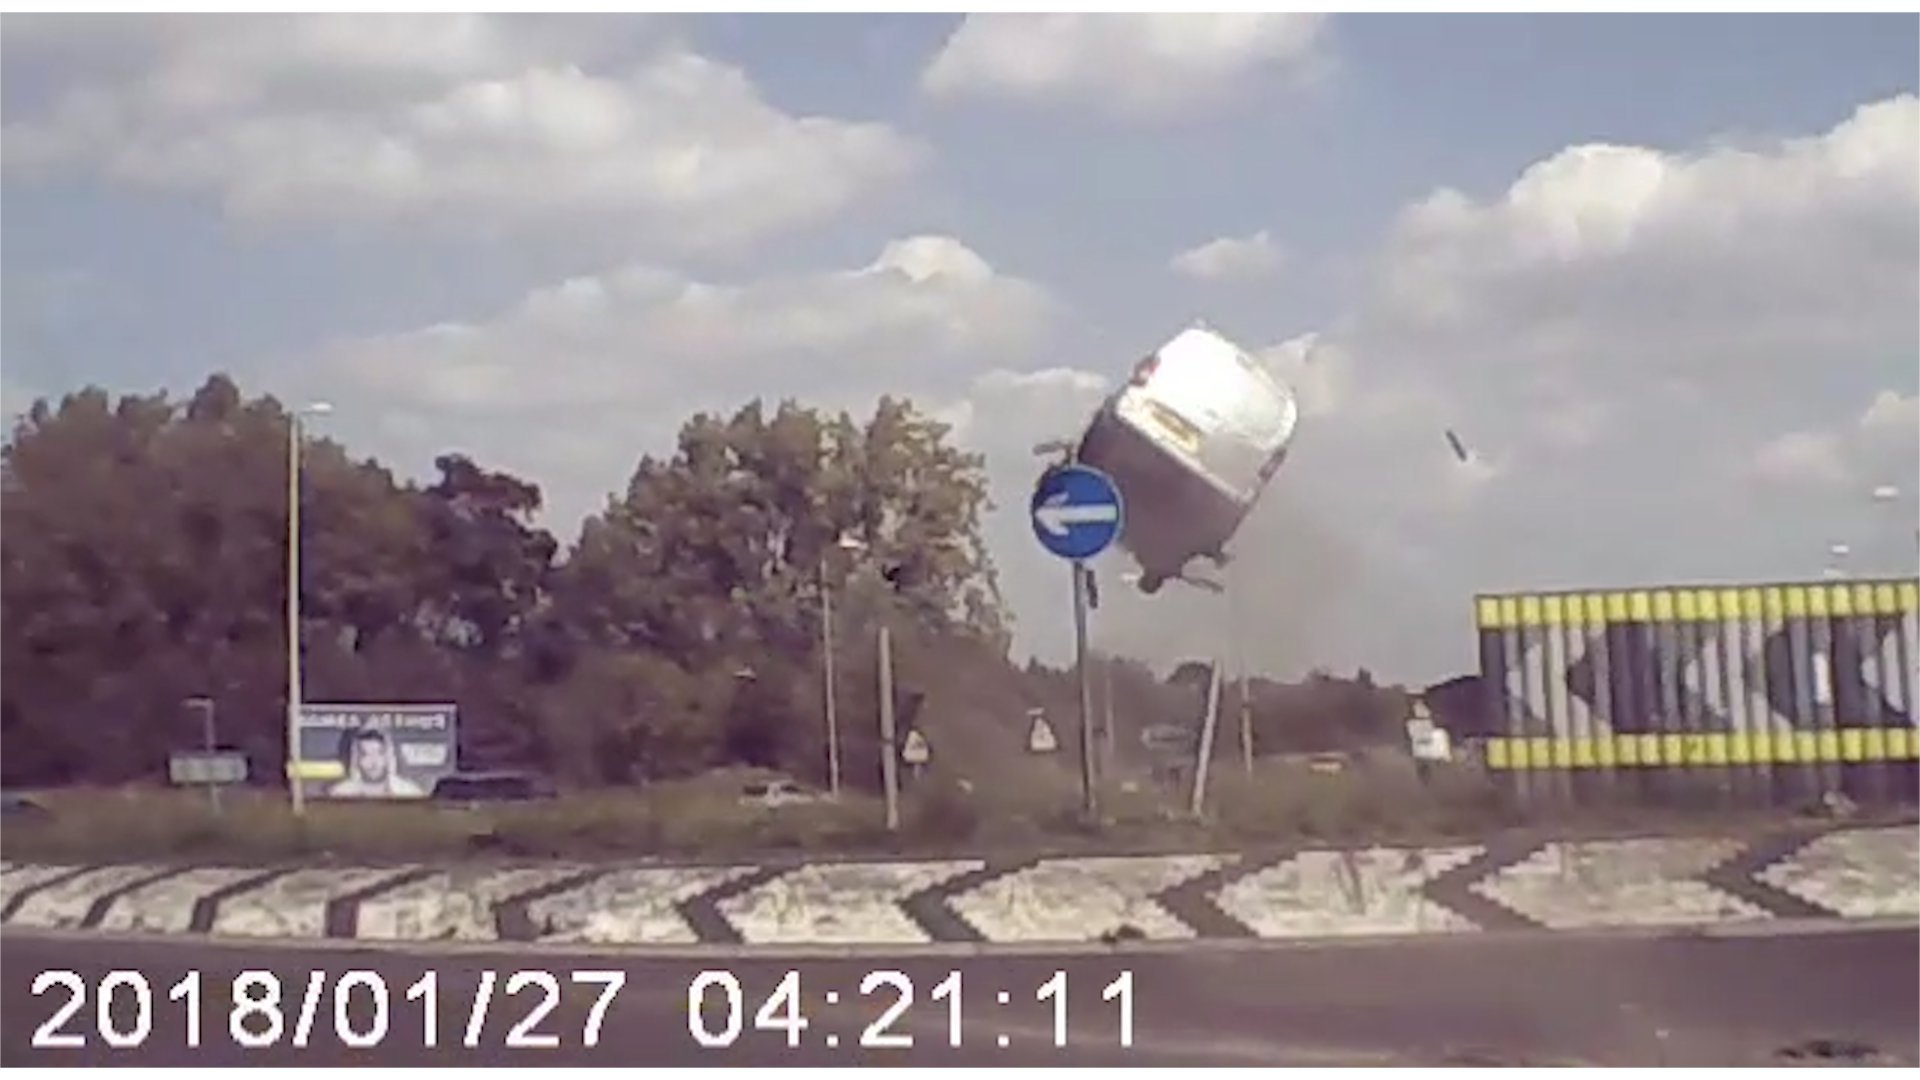 Video showing a van taking off from a roundabout on the A11 at Attleborough, Norfolk. See Masons copy MNVAN: This amazing footage appears to capture a 'Dukes of Hazzard style' moment when a speeding van flies through the air after hitting a roundabout. The silver Citroen van is caught hurtling along a dual carriageway before failing to stop and launching into the air as it strikes the cambered edge of the roundabout. Motorcyclist Andy Daynes, 35, said he caught the footage on his helmet cam while driving behind the van on the A11 at Attleborough, Norfolk, earlier this year.